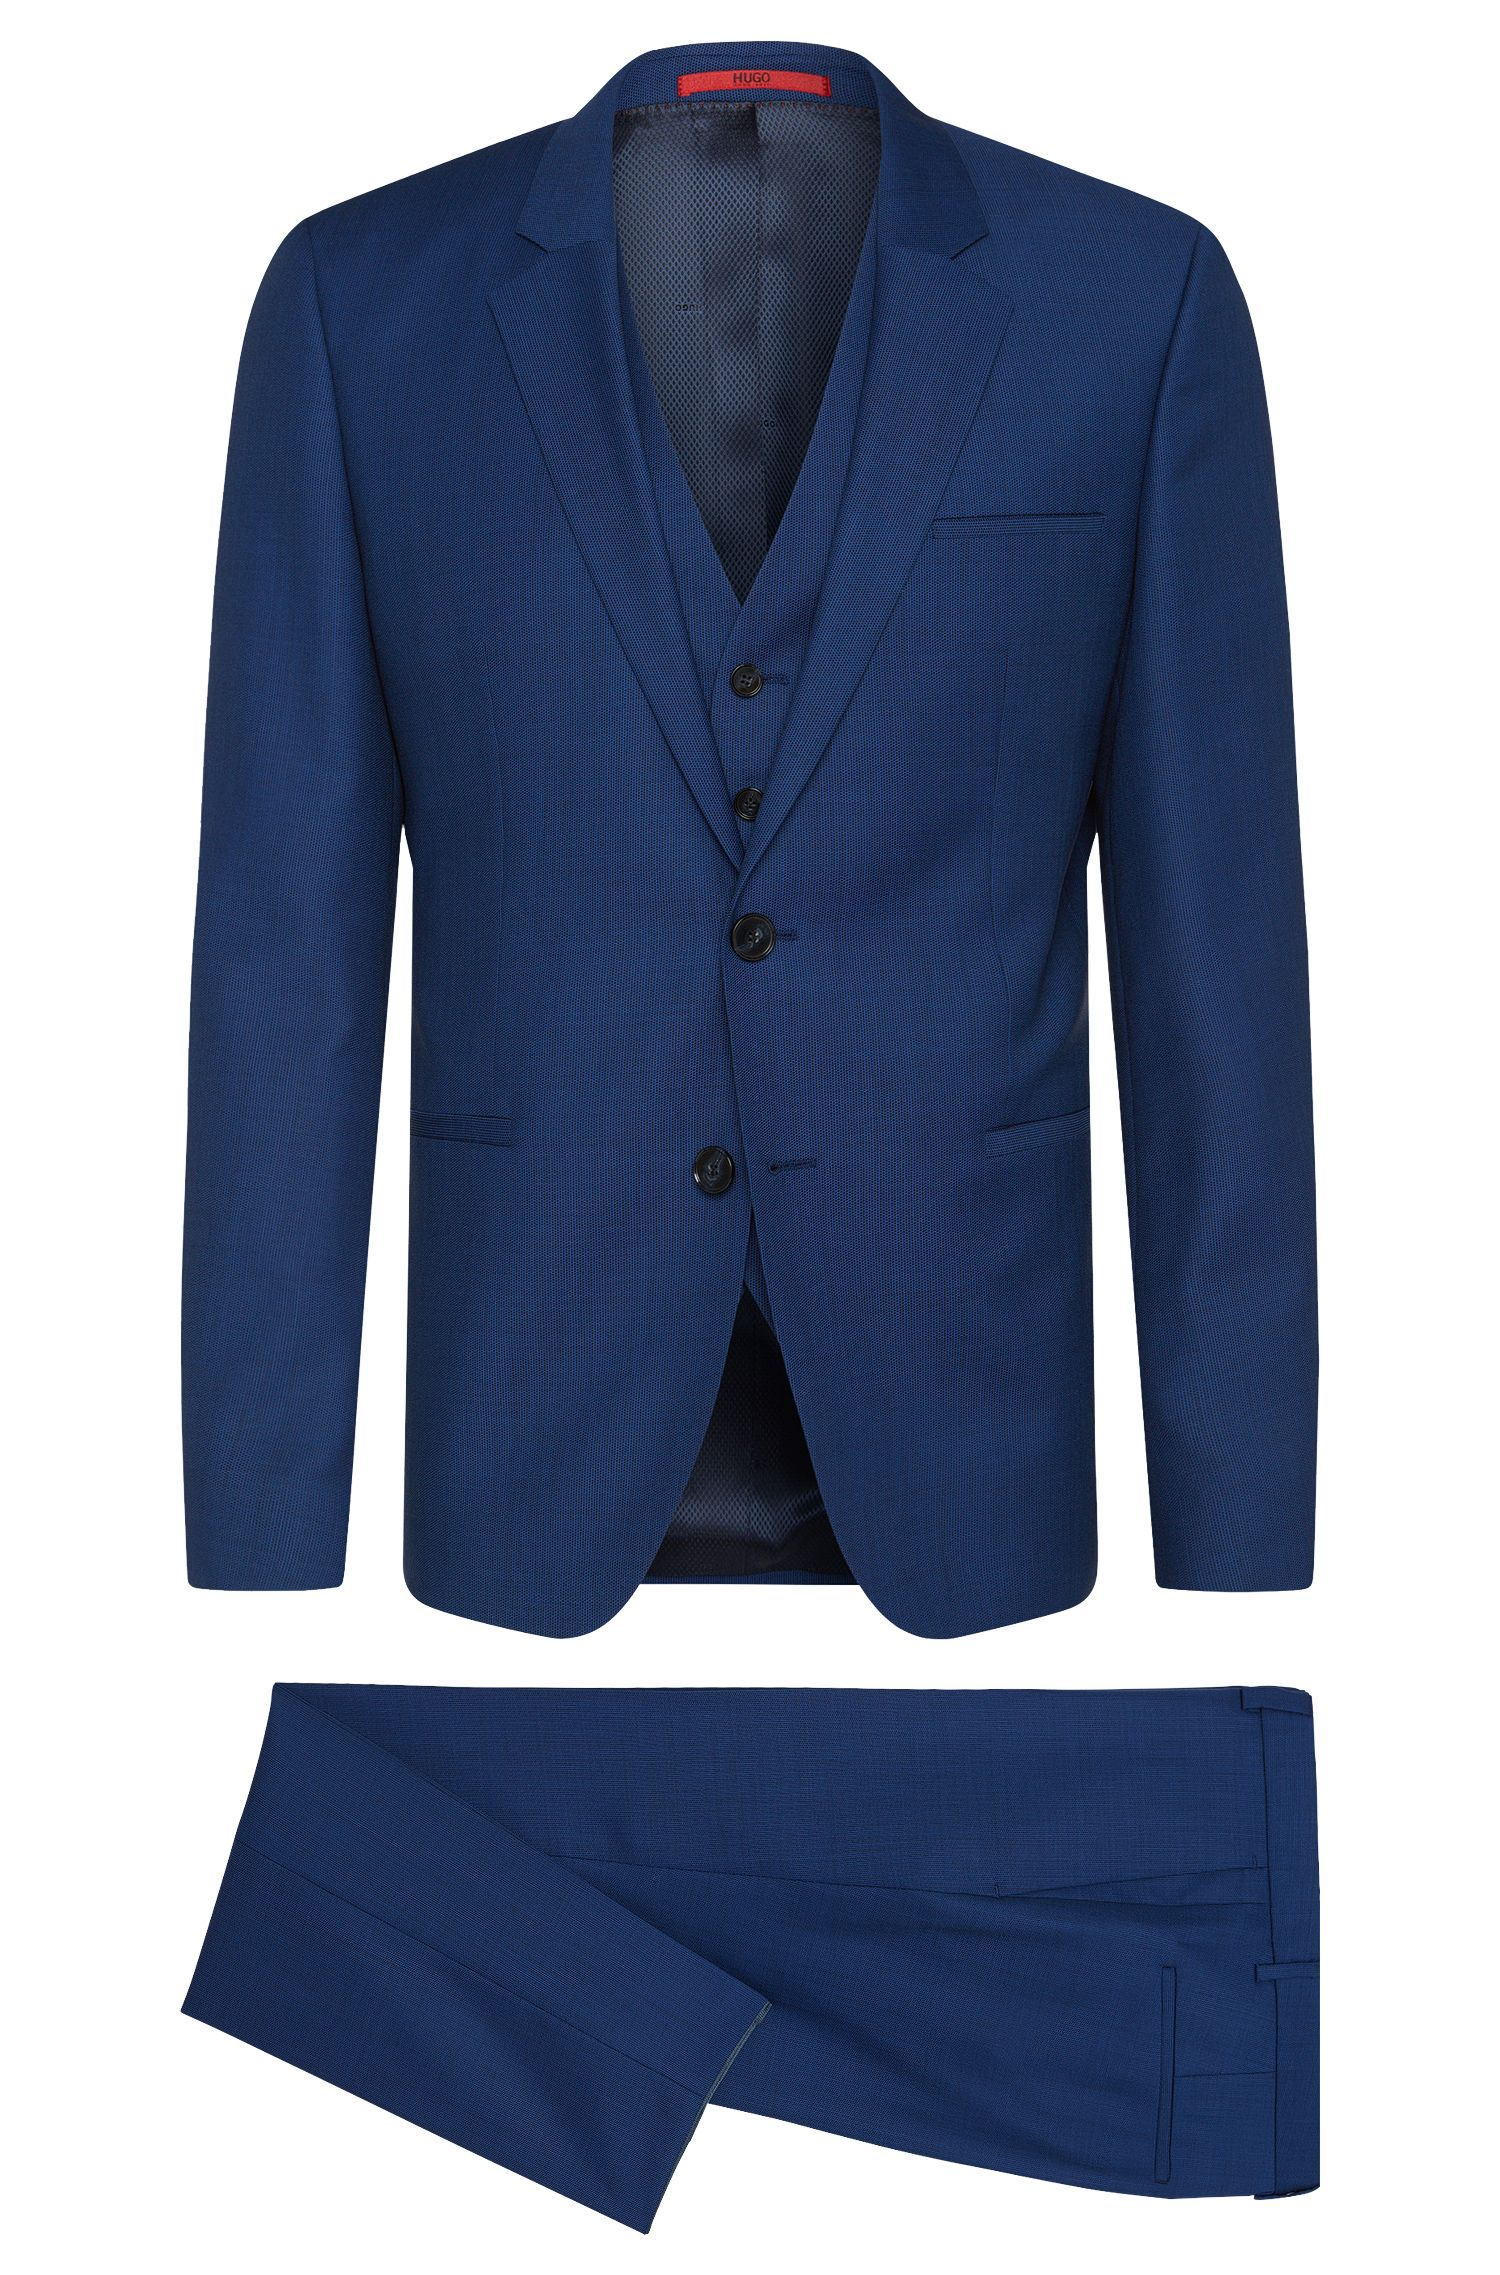 'Arvon/Wiant/Hilwert' | Slim Fit, Super 100 Virgin Wool 3-Piece Suit